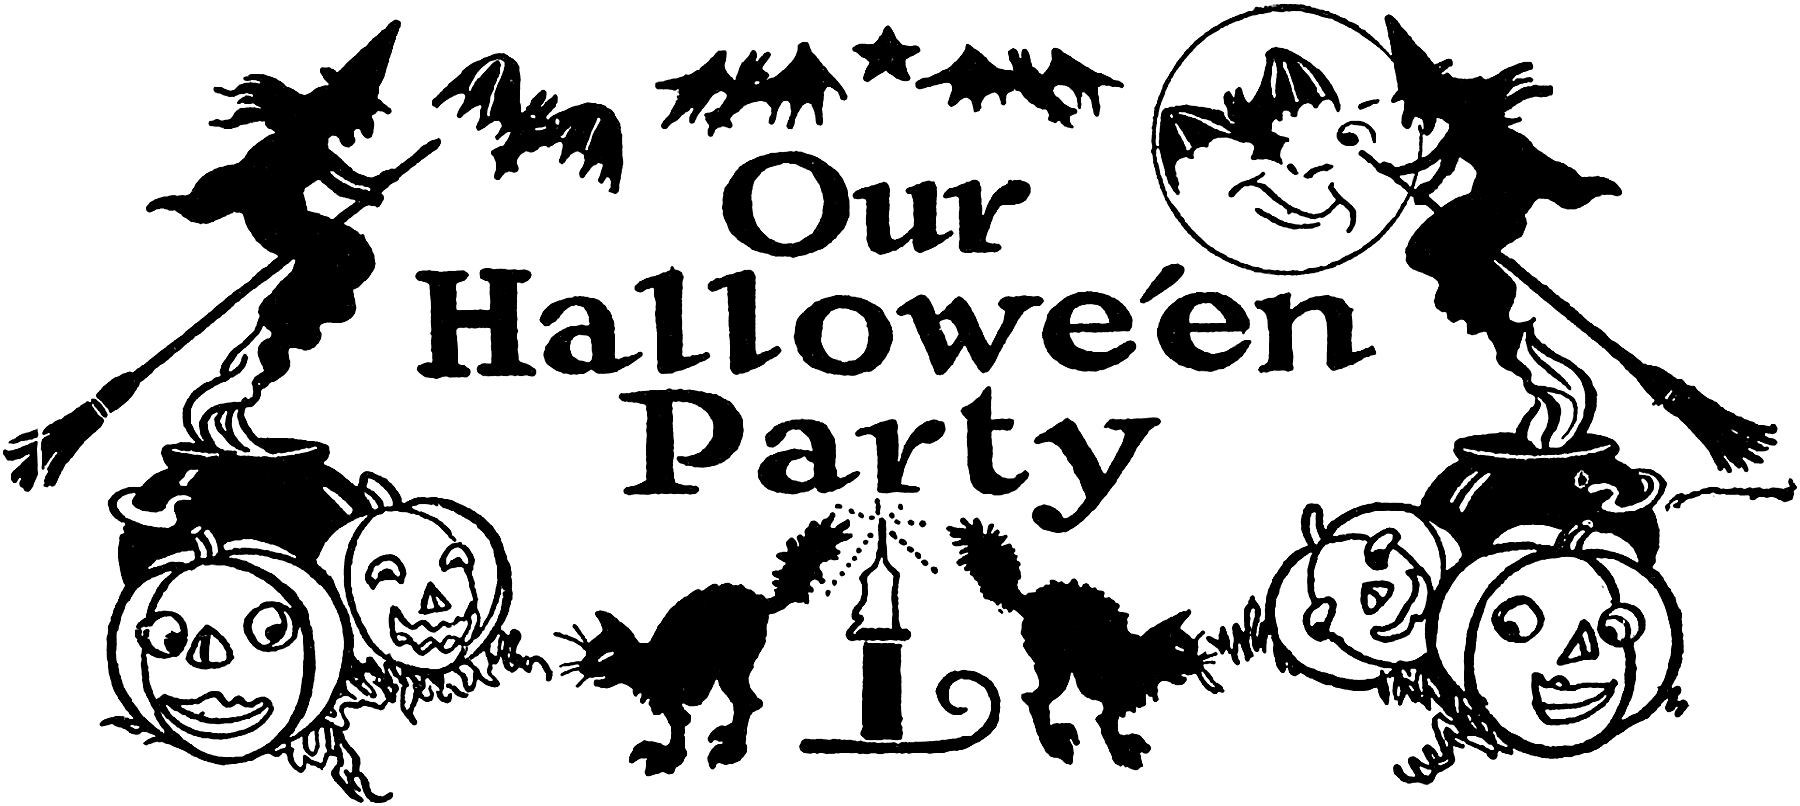 Vintage Halloween Clip Art Black And White 10 Free